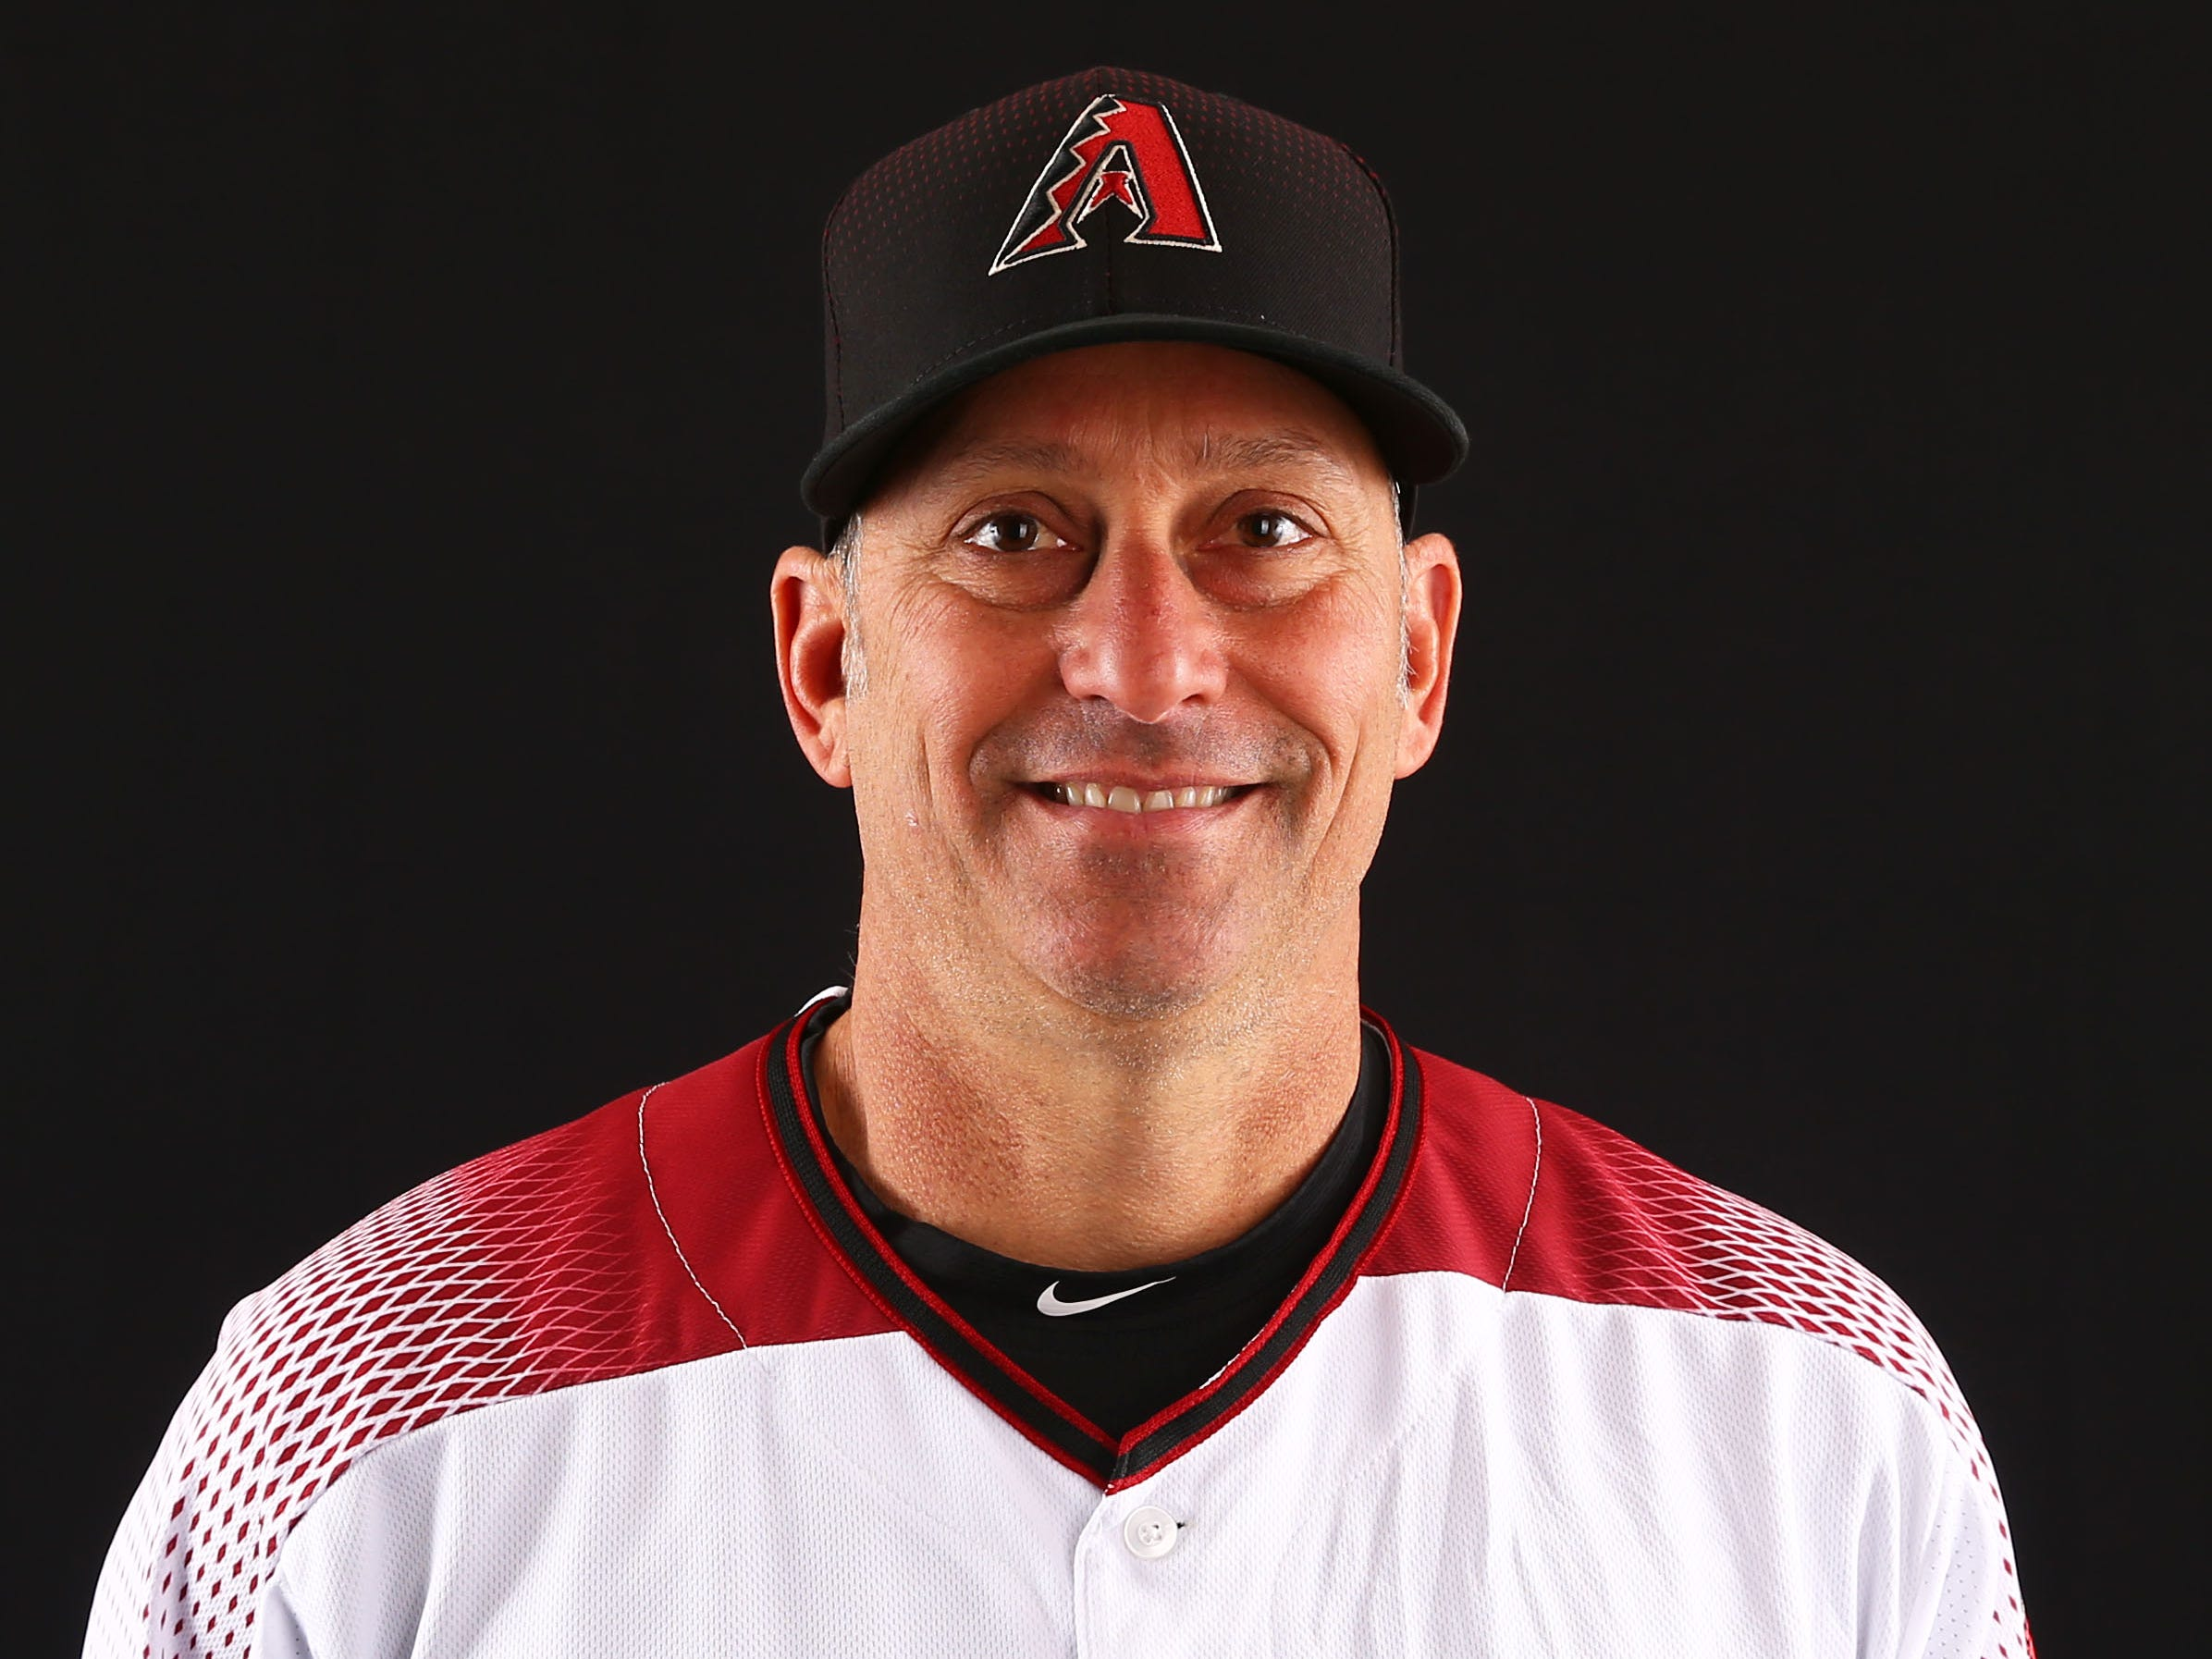 Torey Lovullo of the Arizona Diamondbacks poses for a photo during the annual Spring Training Photo Day on Feb. 20 at Salt River Fields in Scottsdale, Ariz.